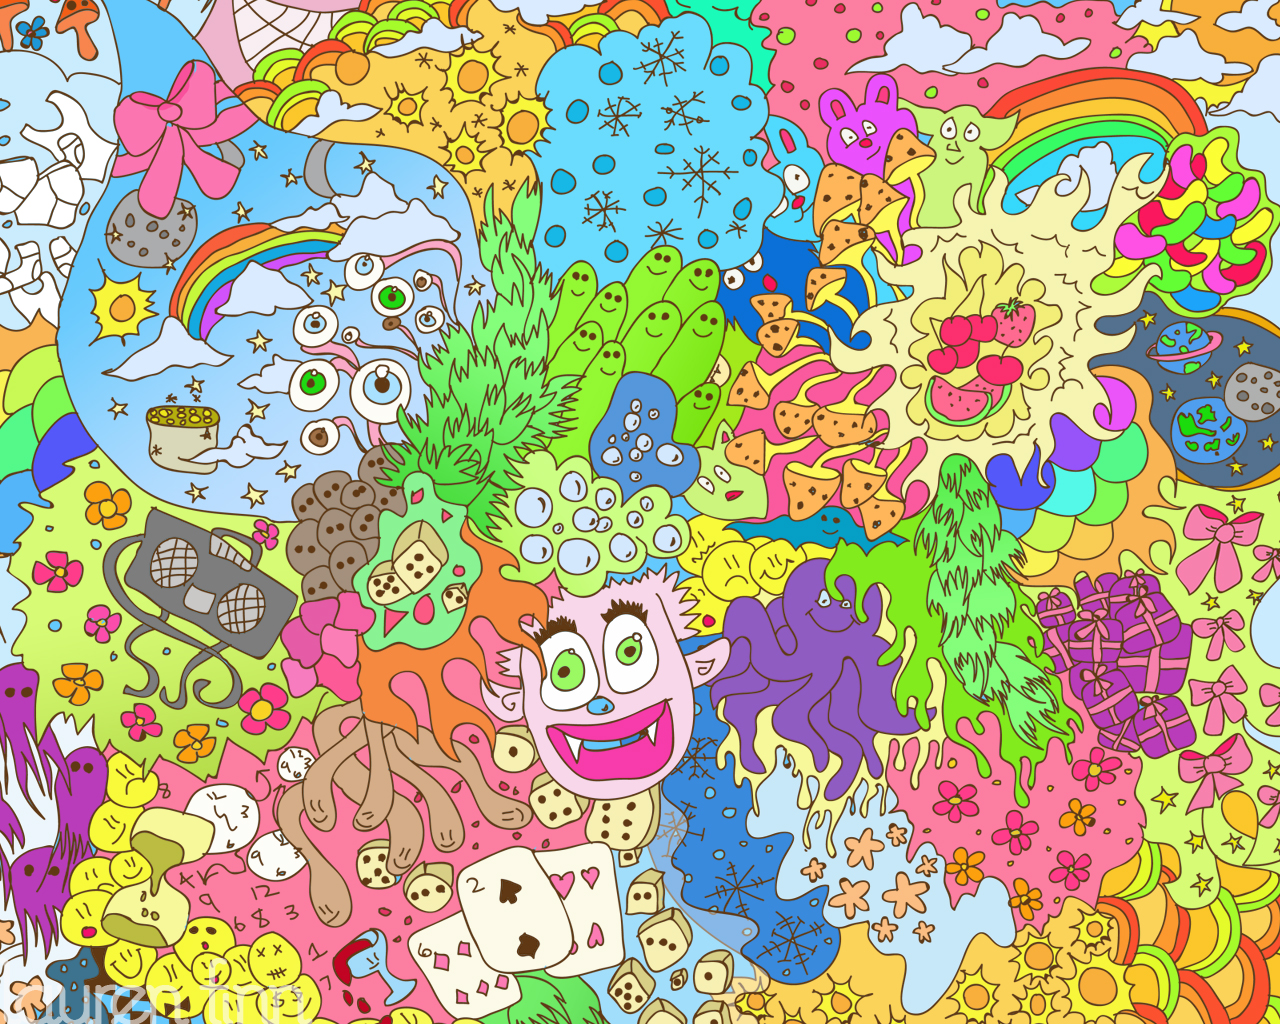 Doodle wallpapers wallpapersafari - Doodle desktop wallpaper ...